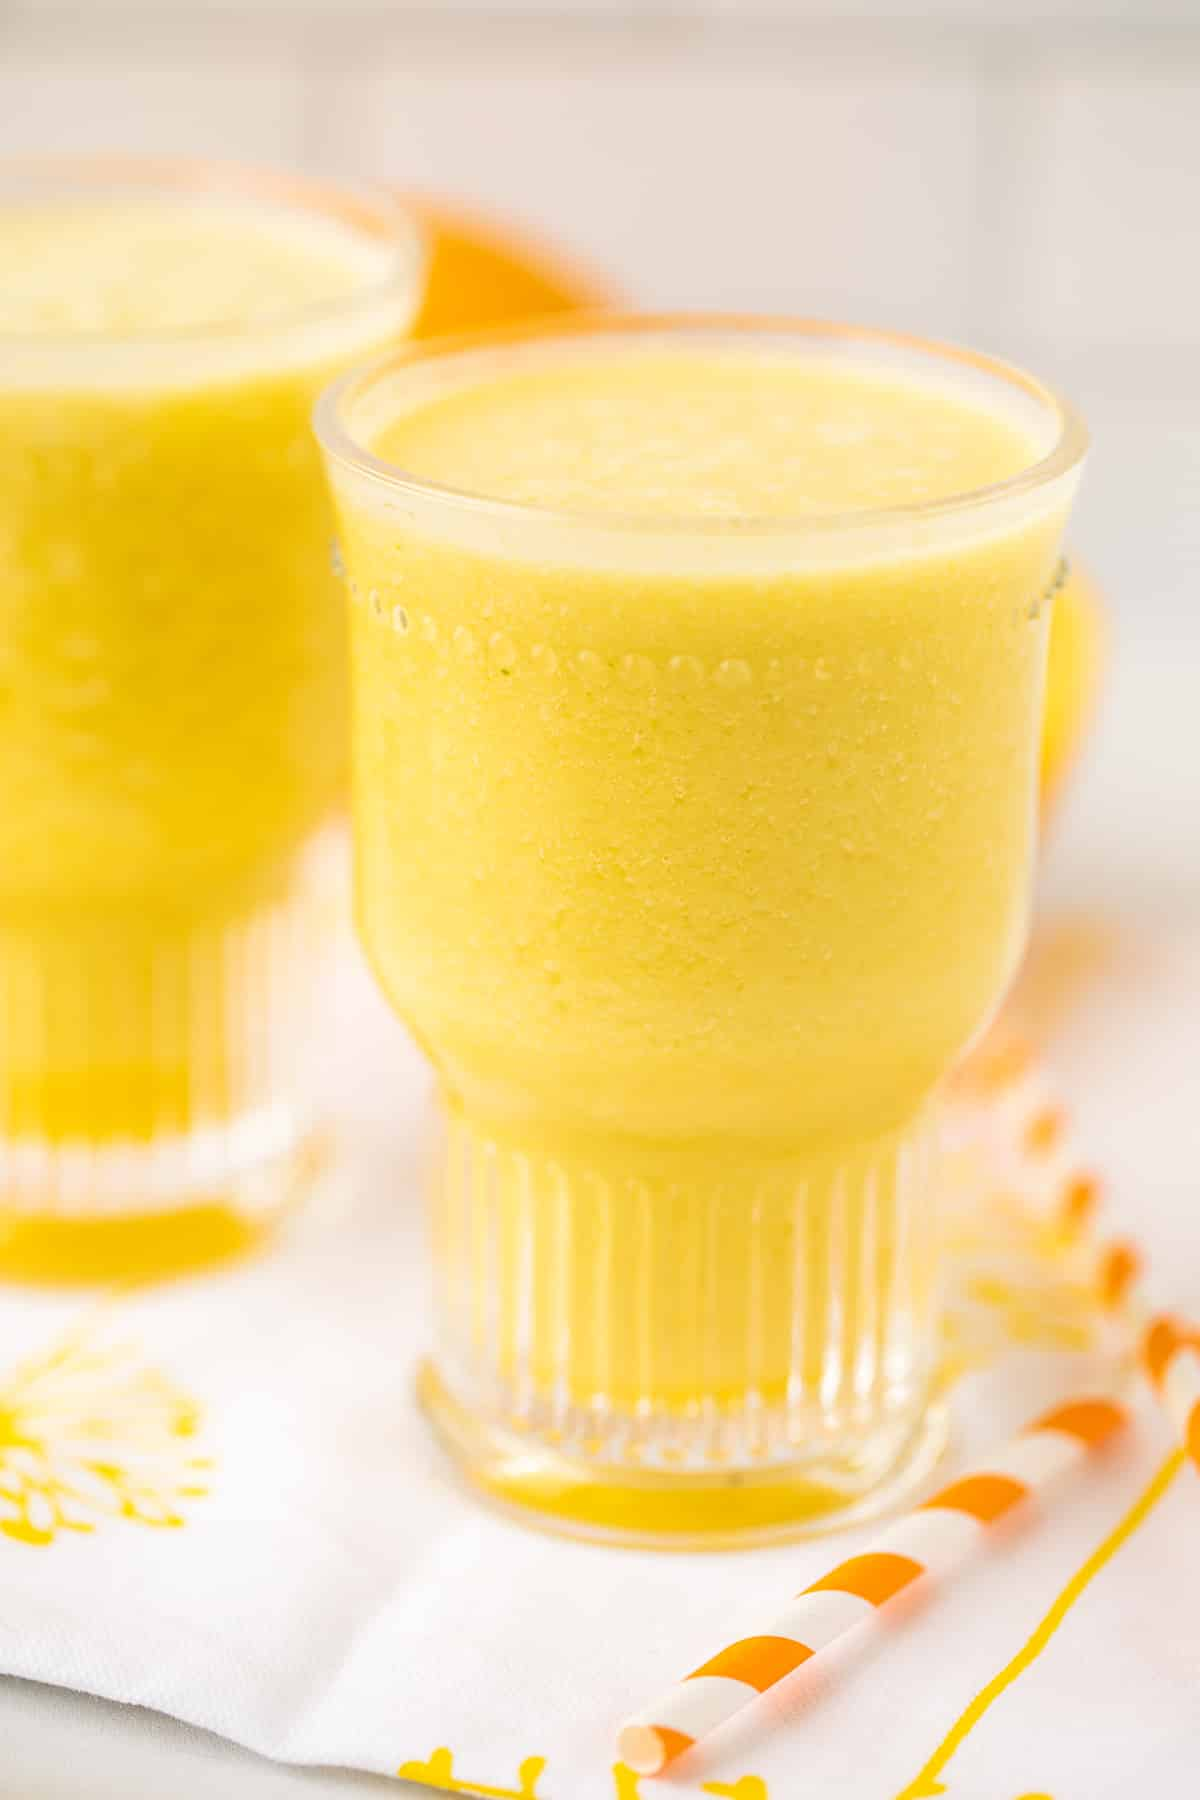 yellow smoothie with an orange striped straw